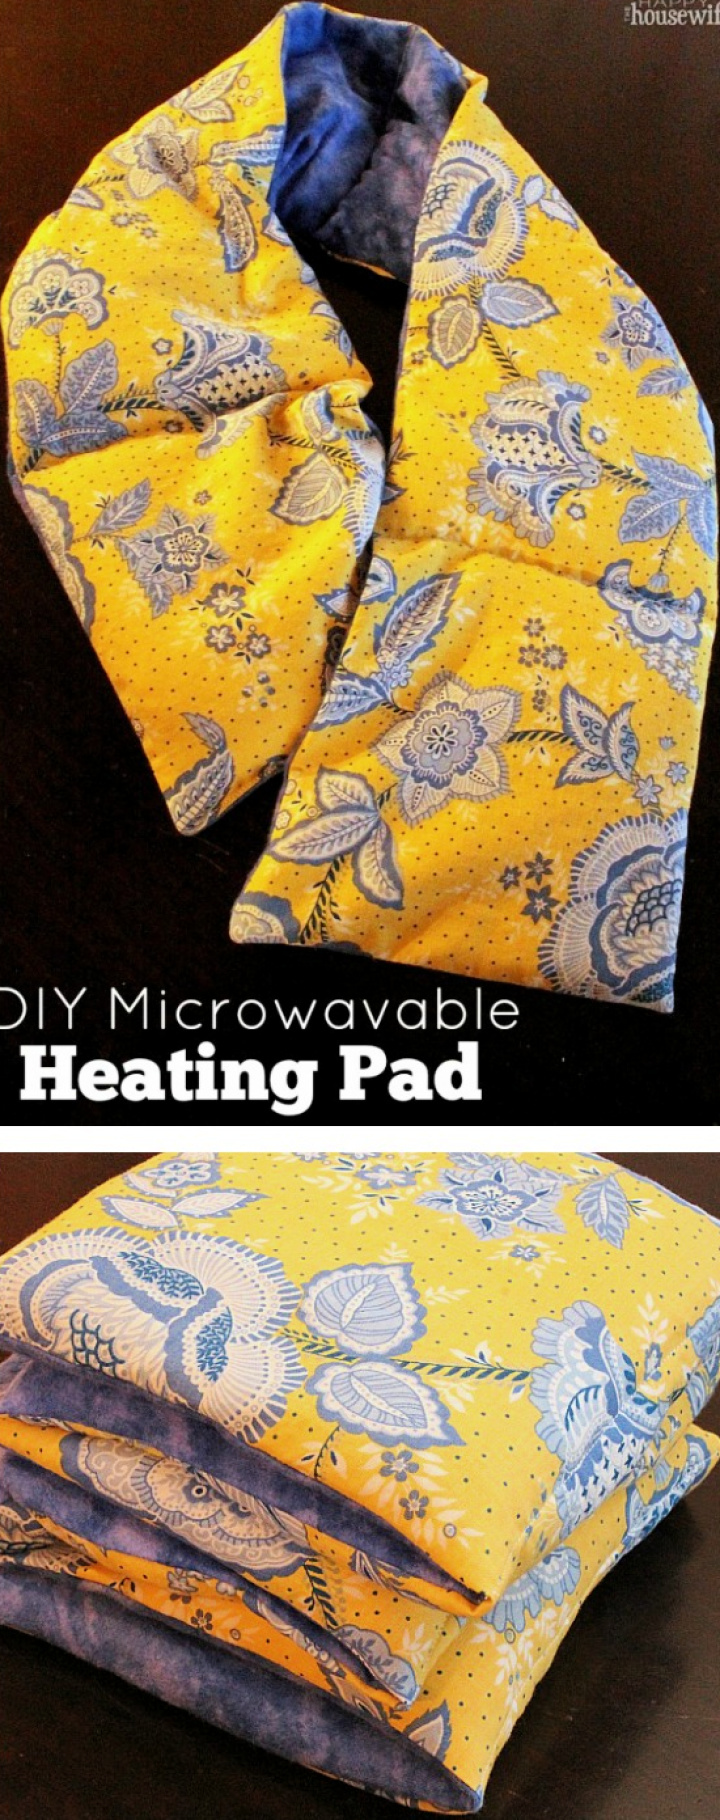 DIY Reusable Microwavable Heating Pad